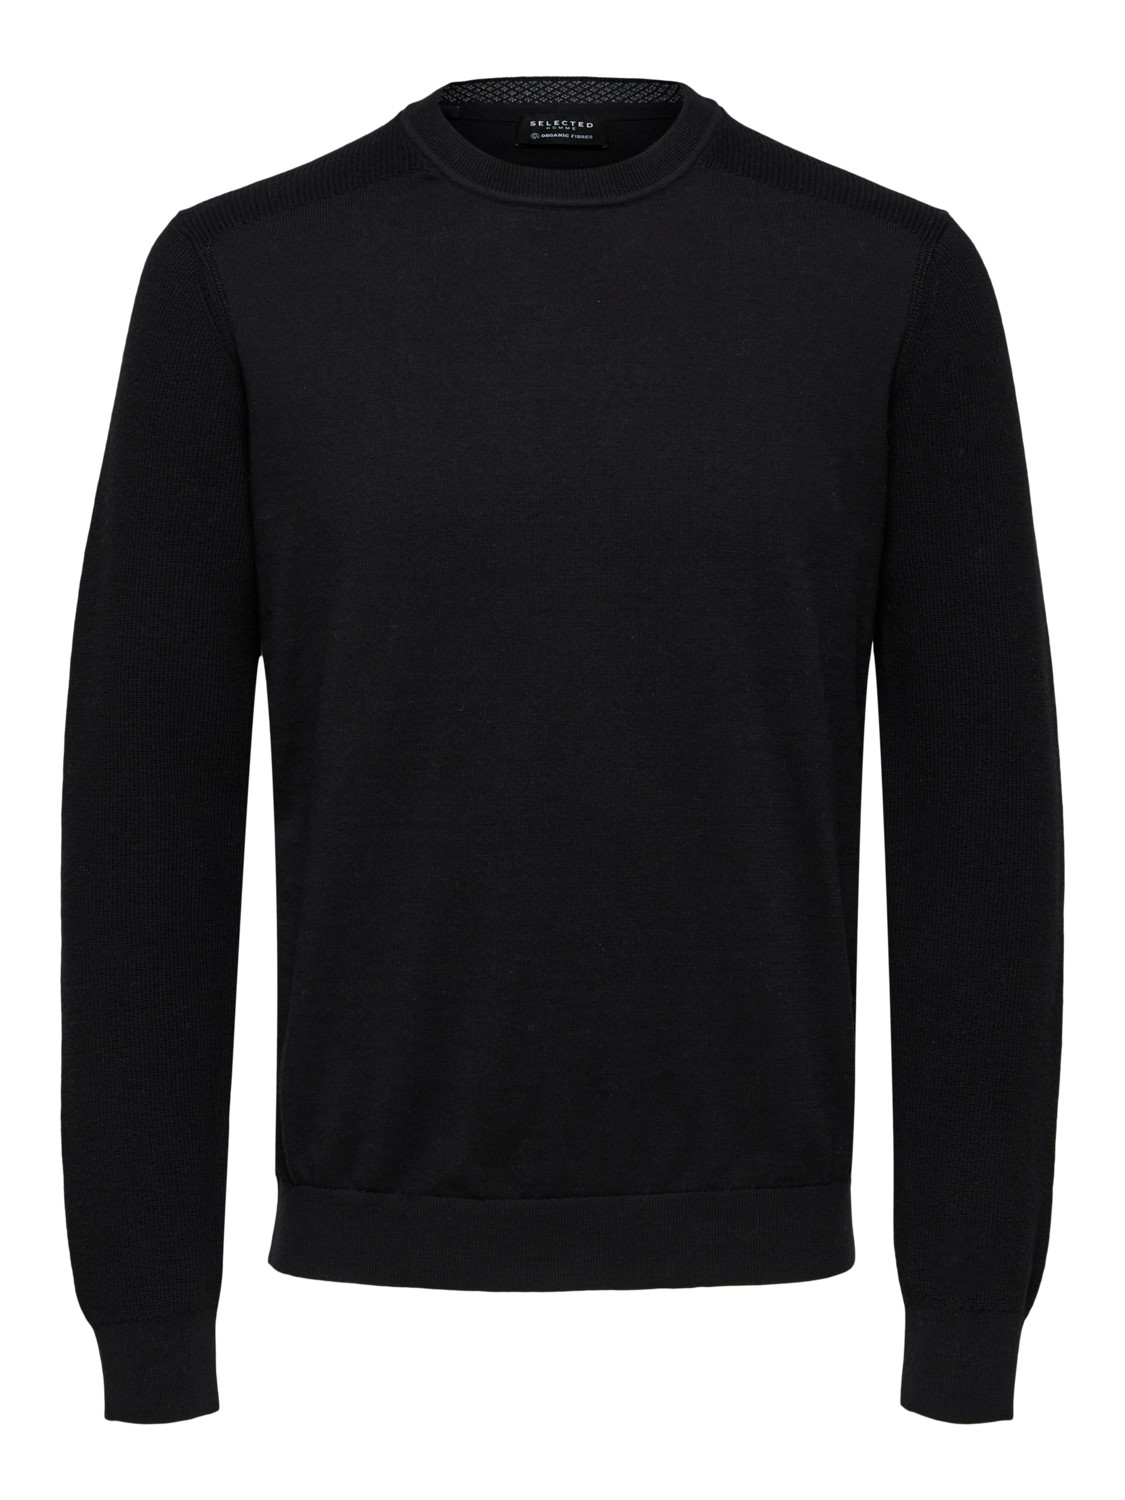 Selected - Slhallen crew neck camp navy | Gate36 Hobro